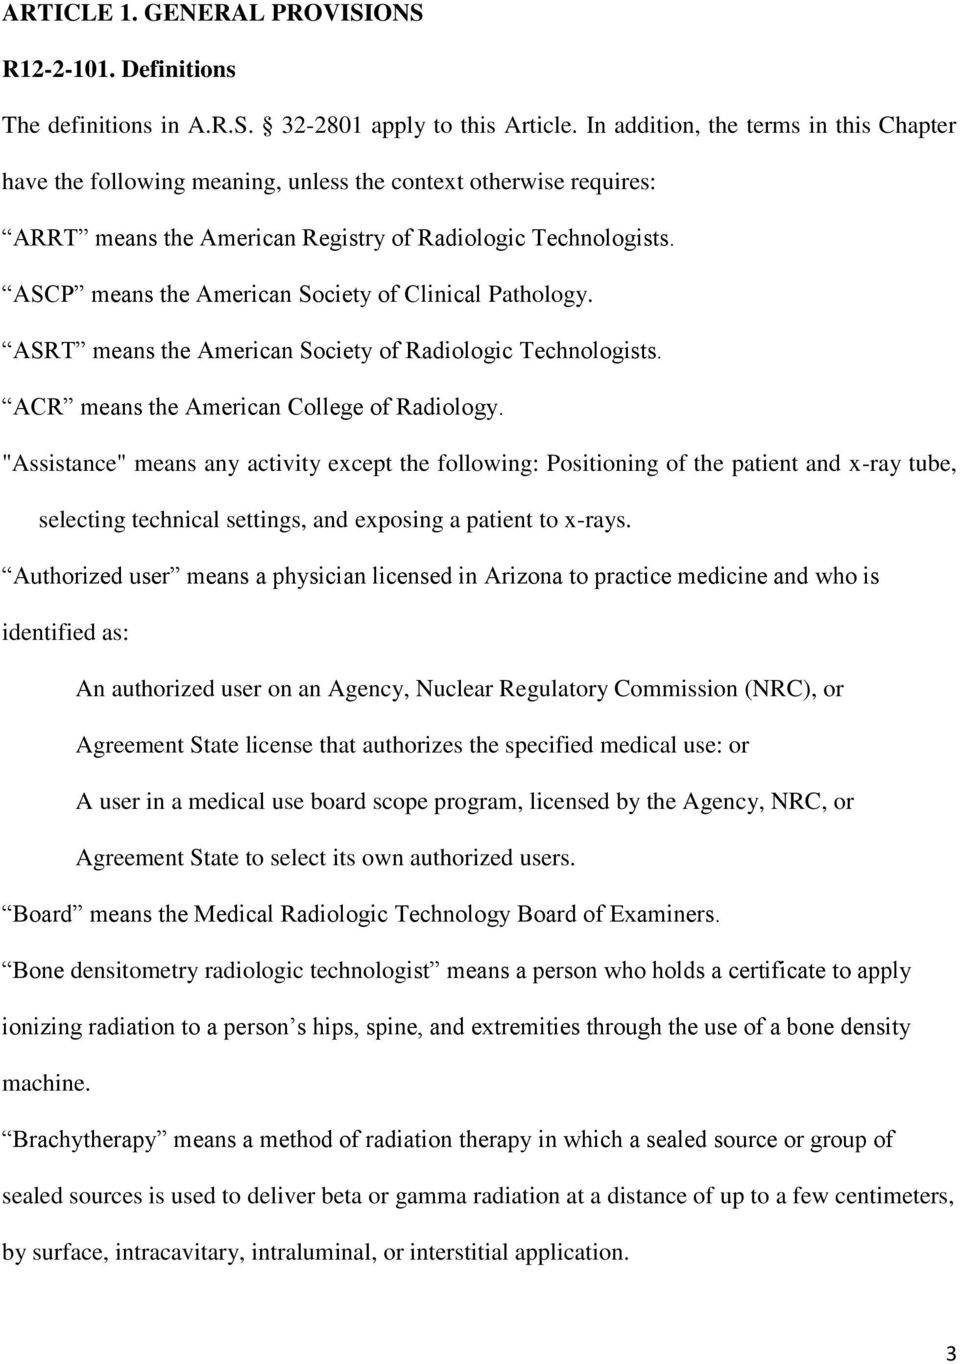 ASCP means the American Society of Clinical Pathology. ASRT means the American Society of Radiologic Technologists. ACR means the American College of Radiology.